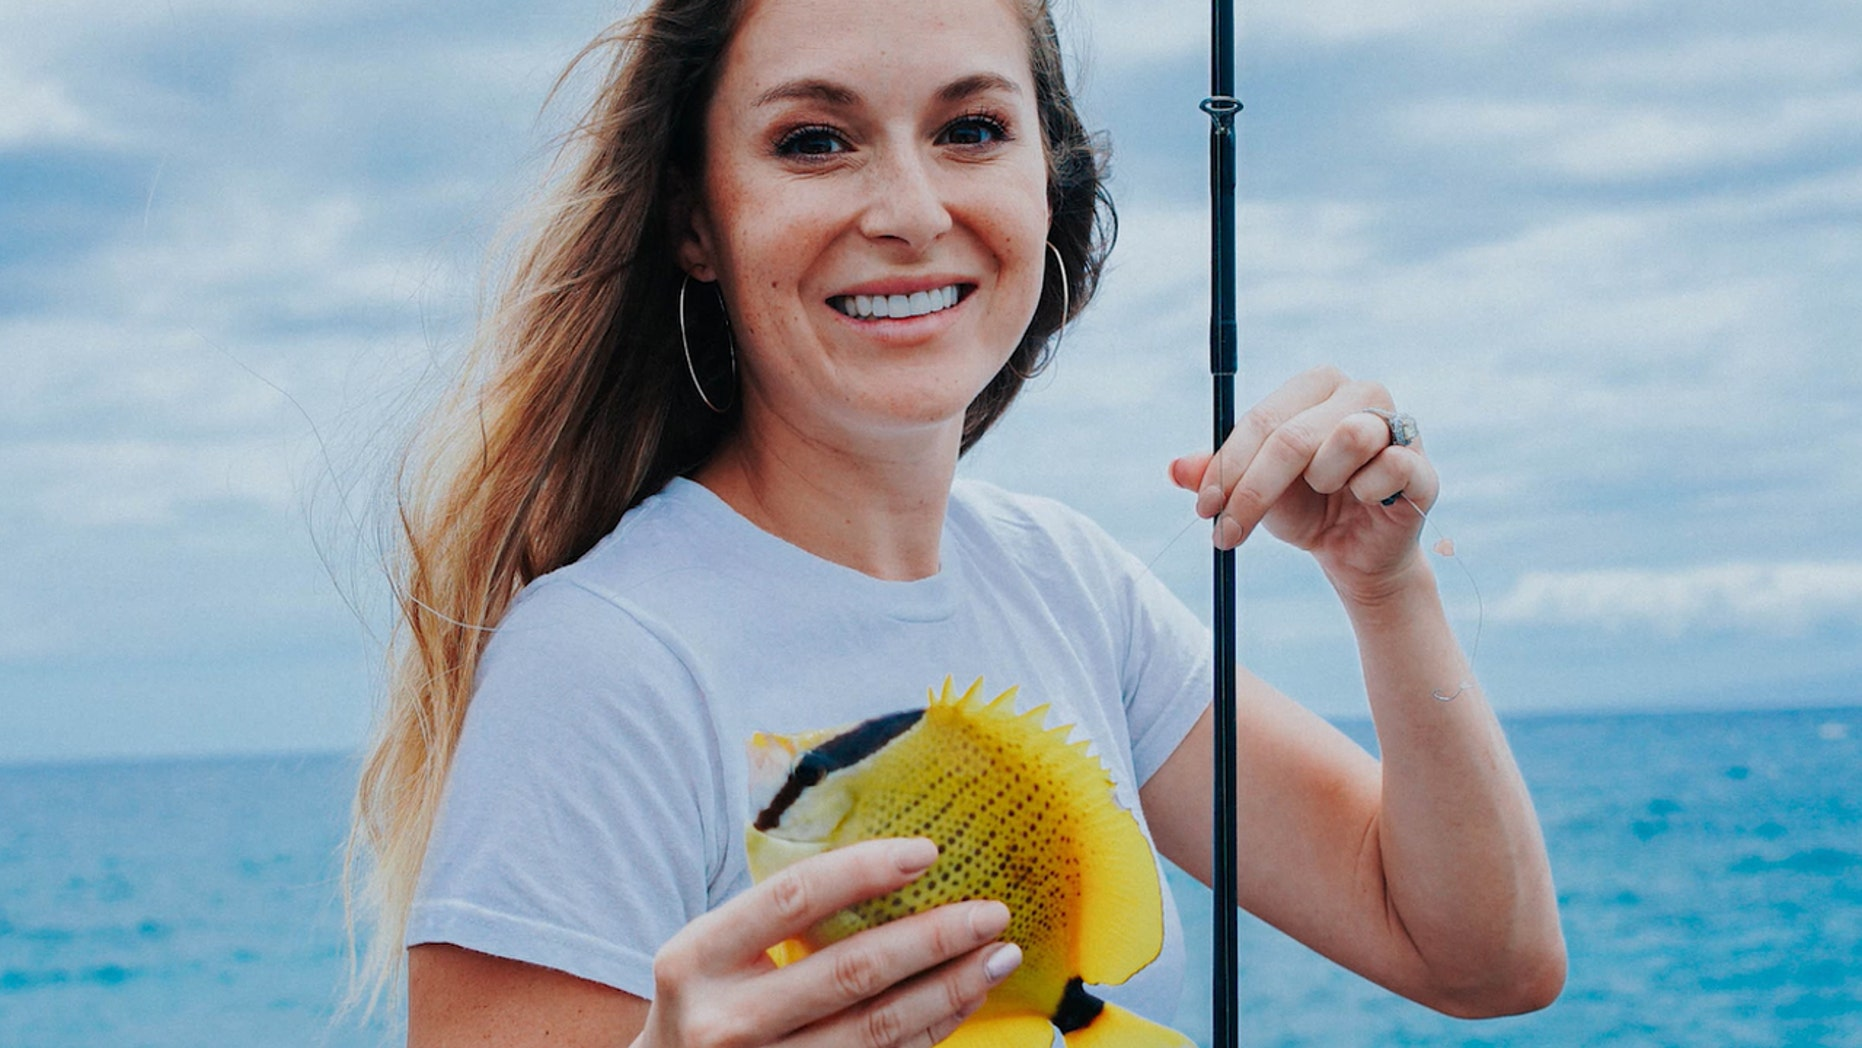 """Former 'Spy Kids"""" star opens up about her  Hollywood days of child stardom and her shares stories about her love of fishing and the outdoors."""